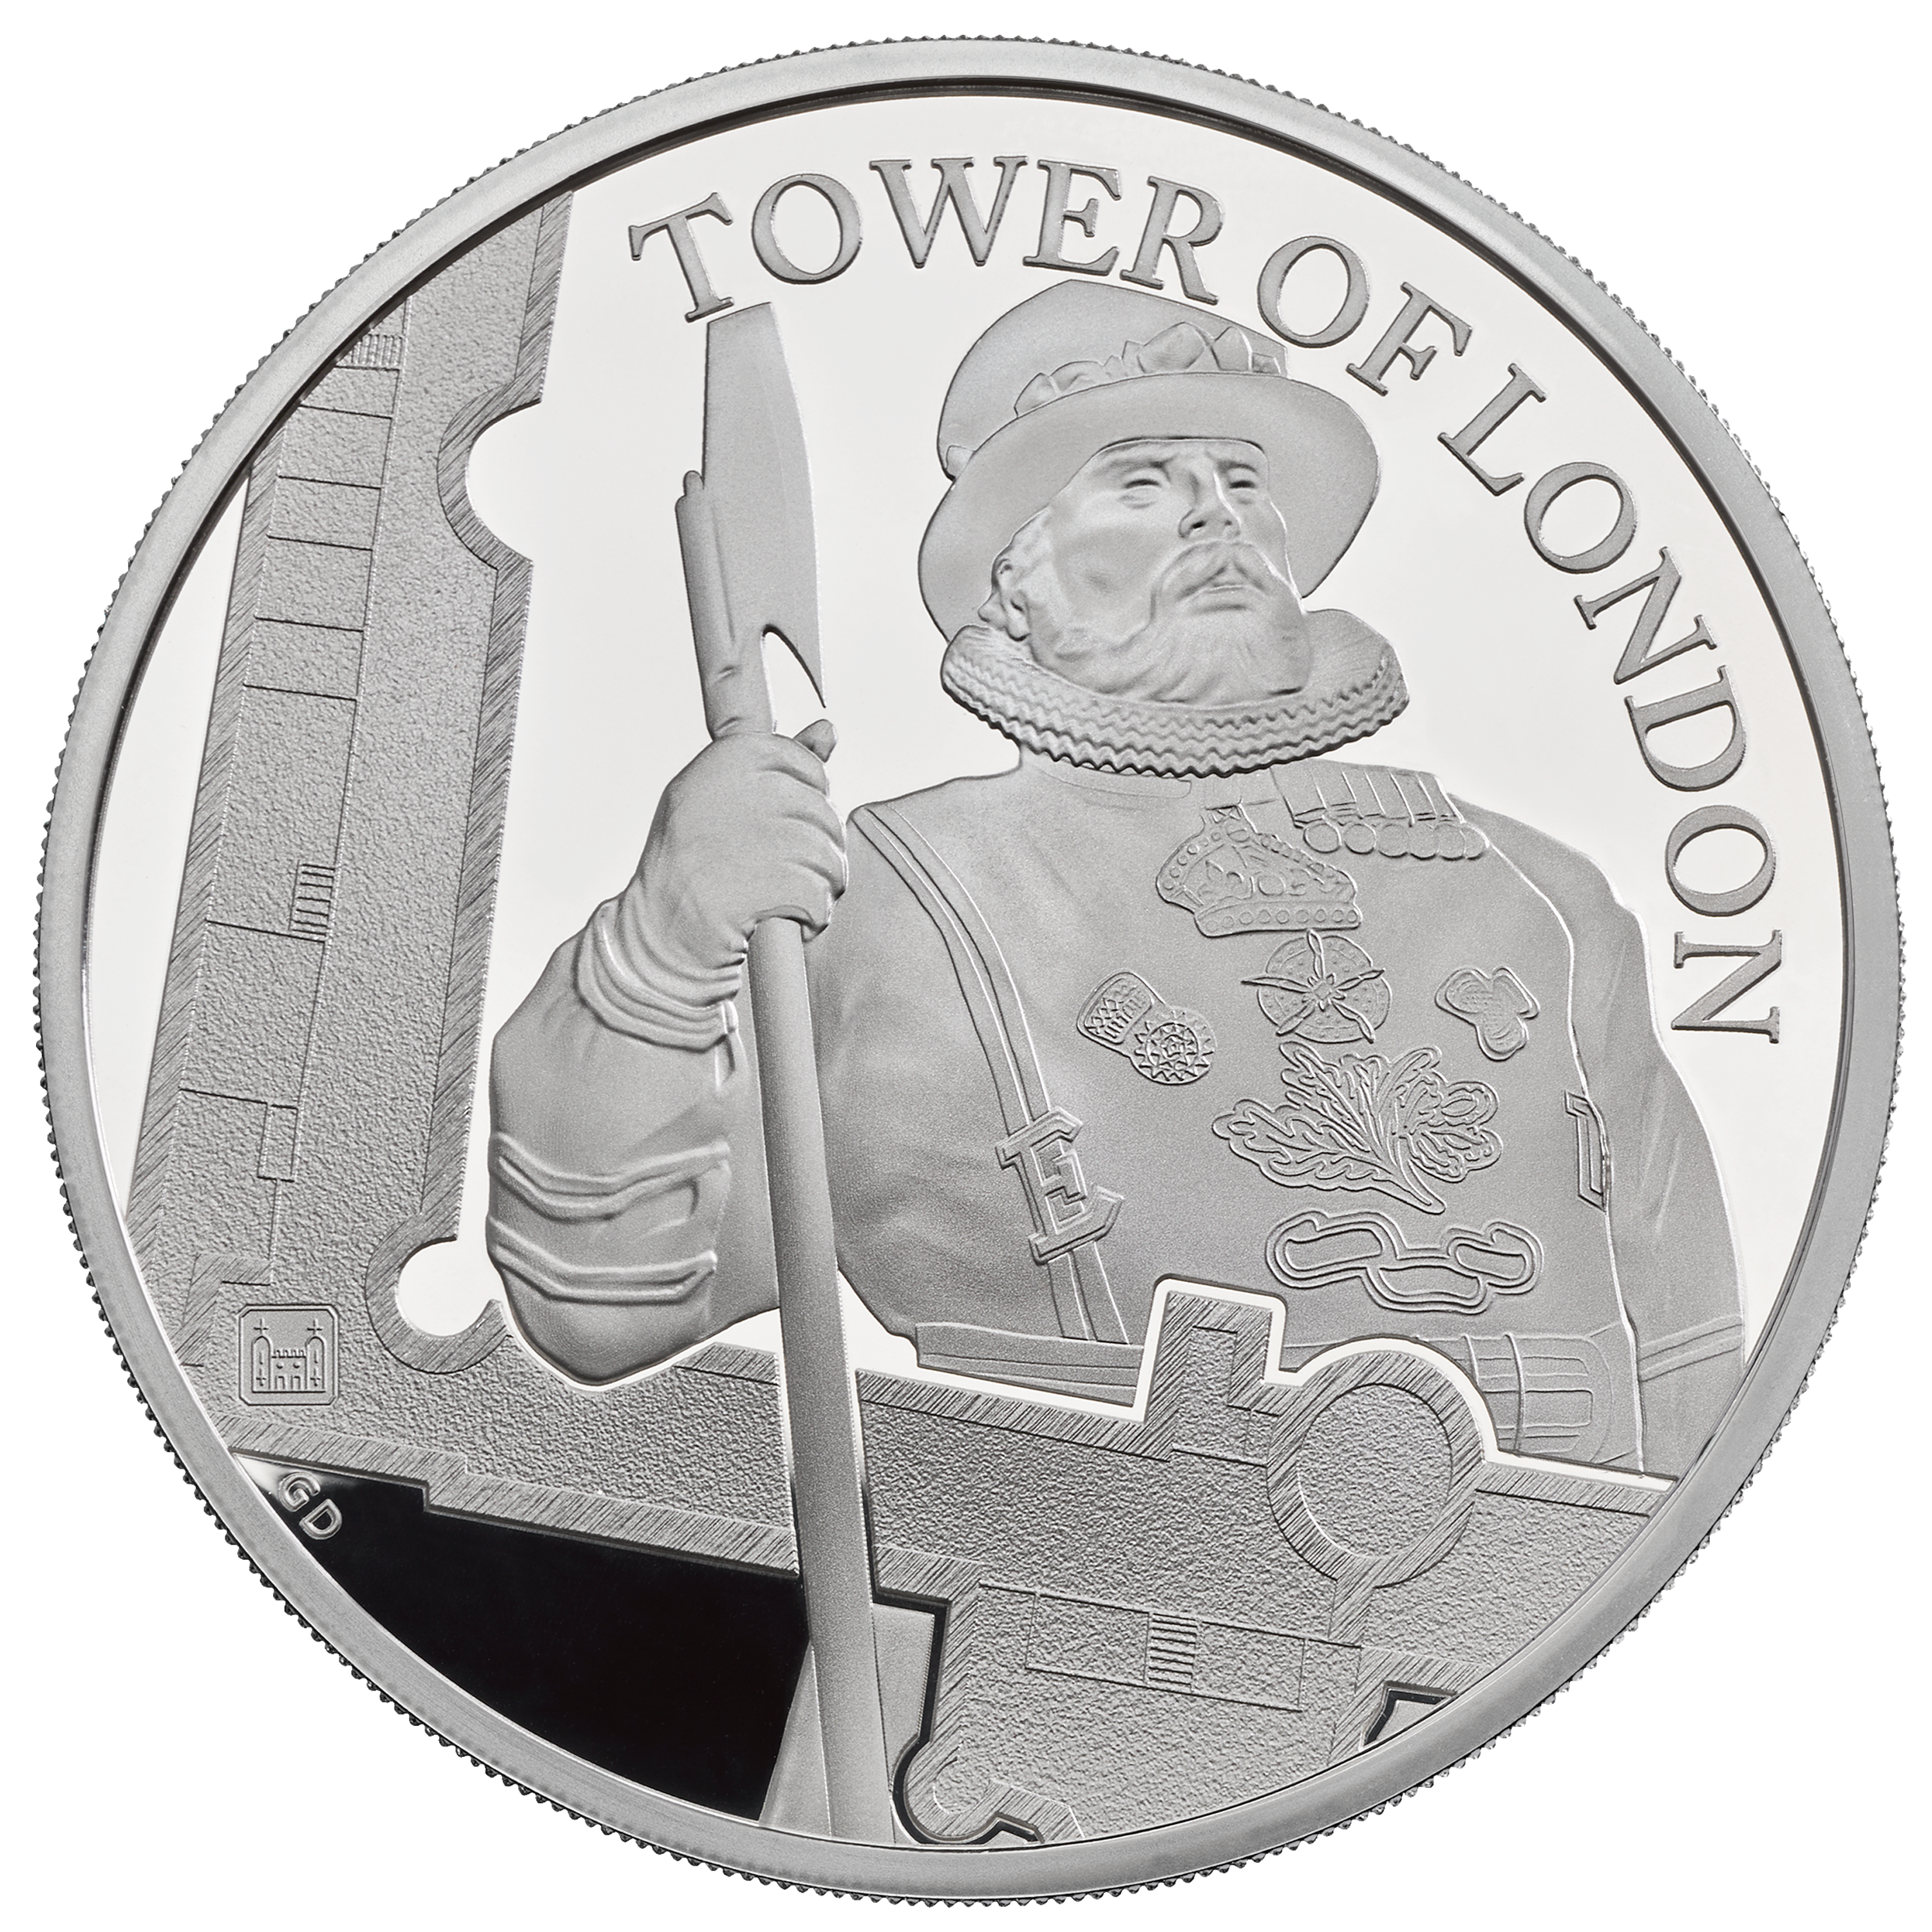 10 GBP Silbermünze Großbritannien The Tower of London - Die Yeoman Warders 5oz 2019 PP